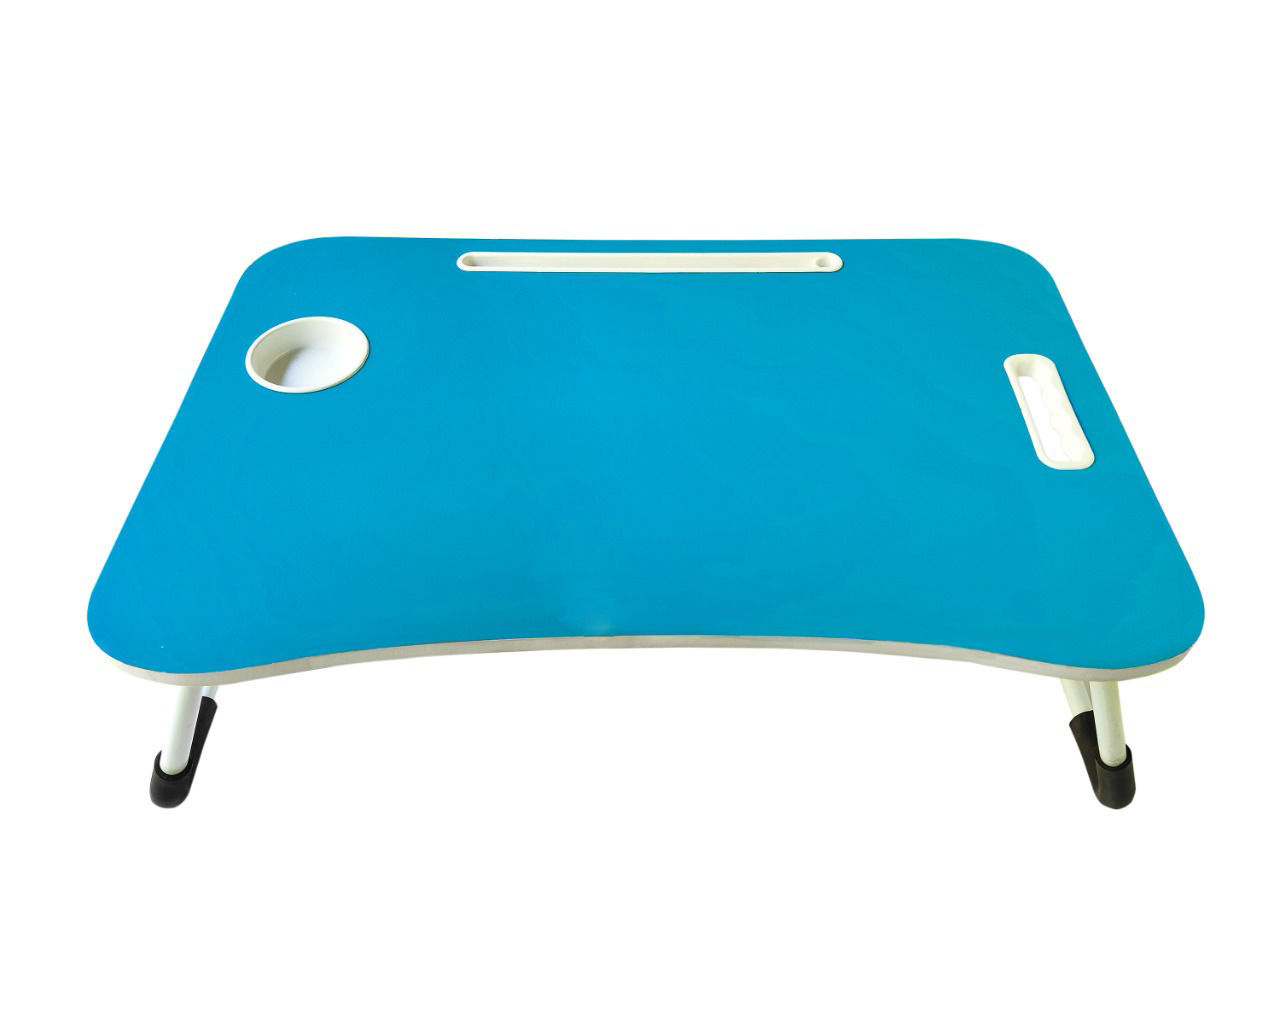 Kids Wooden Bed Table- Blue